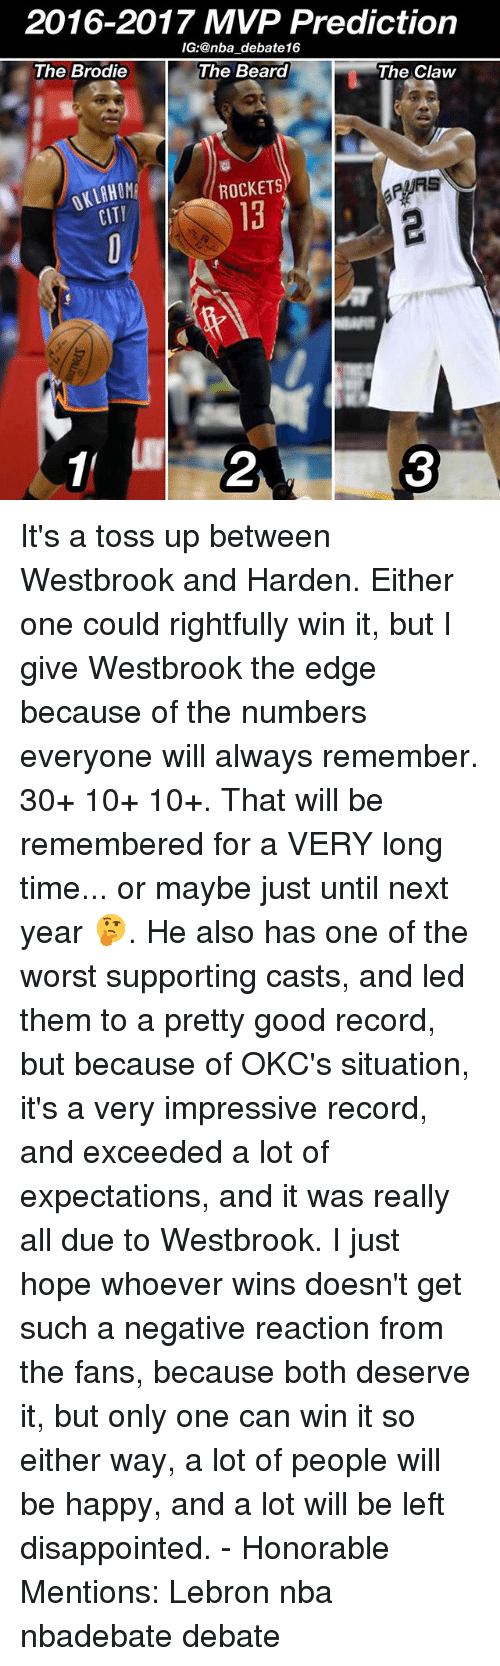 Citi: 2016-2017 MVP Prediction  IG: @nba debate16  The Beard  The Brodie  The Claw  AAS  ROCKETS)  KLAHOMI  CITI It's a toss up between Westbrook and Harden. Either one could rightfully win it, but I give Westbrook the edge because of the numbers everyone will always remember. 30+ 10+ 10+. That will be remembered for a VERY long time... or maybe just until next year 🤔. He also has one of the worst supporting casts, and led them to a pretty good record, but because of OKC's situation, it's a very impressive record, and exceeded a lot of expectations, and it was really all due to Westbrook. I just hope whoever wins doesn't get such a negative reaction from the fans, because both deserve it, but only one can win it so either way, a lot of people will be happy, and a lot will be left disappointed. - Honorable Mentions: Lebron nba nbadebate debate